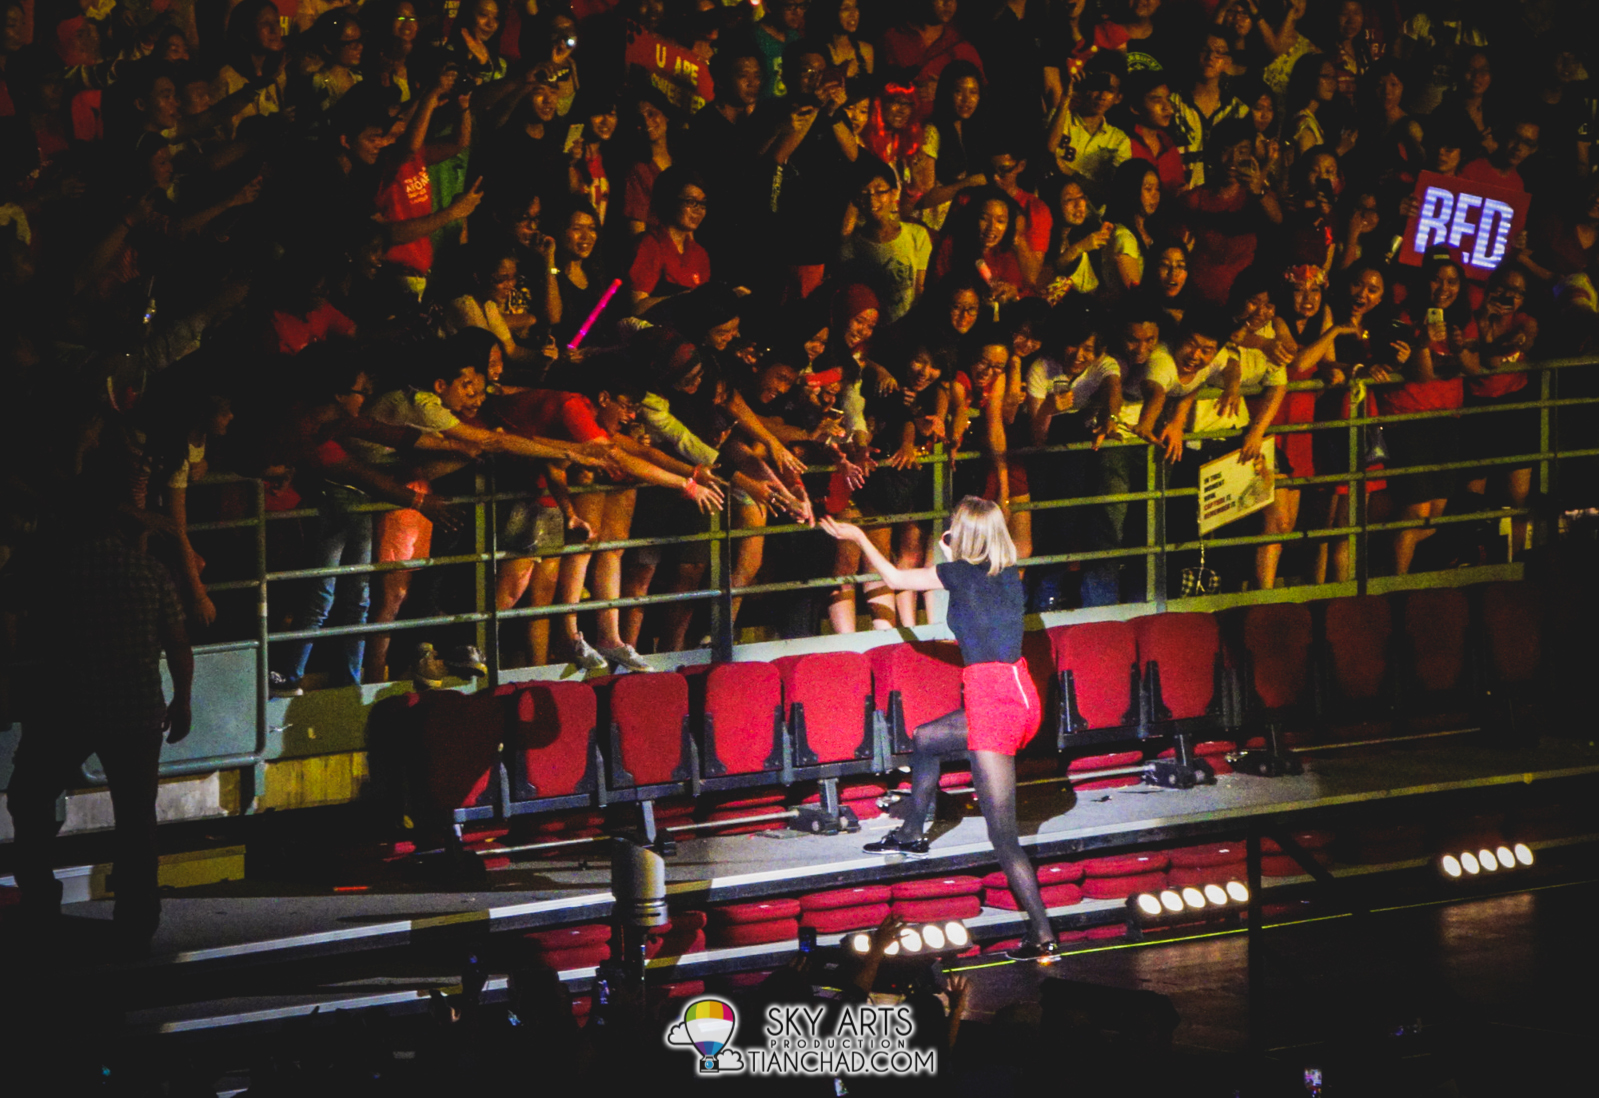 The lucky one who shook hands with Taylor Swift =)